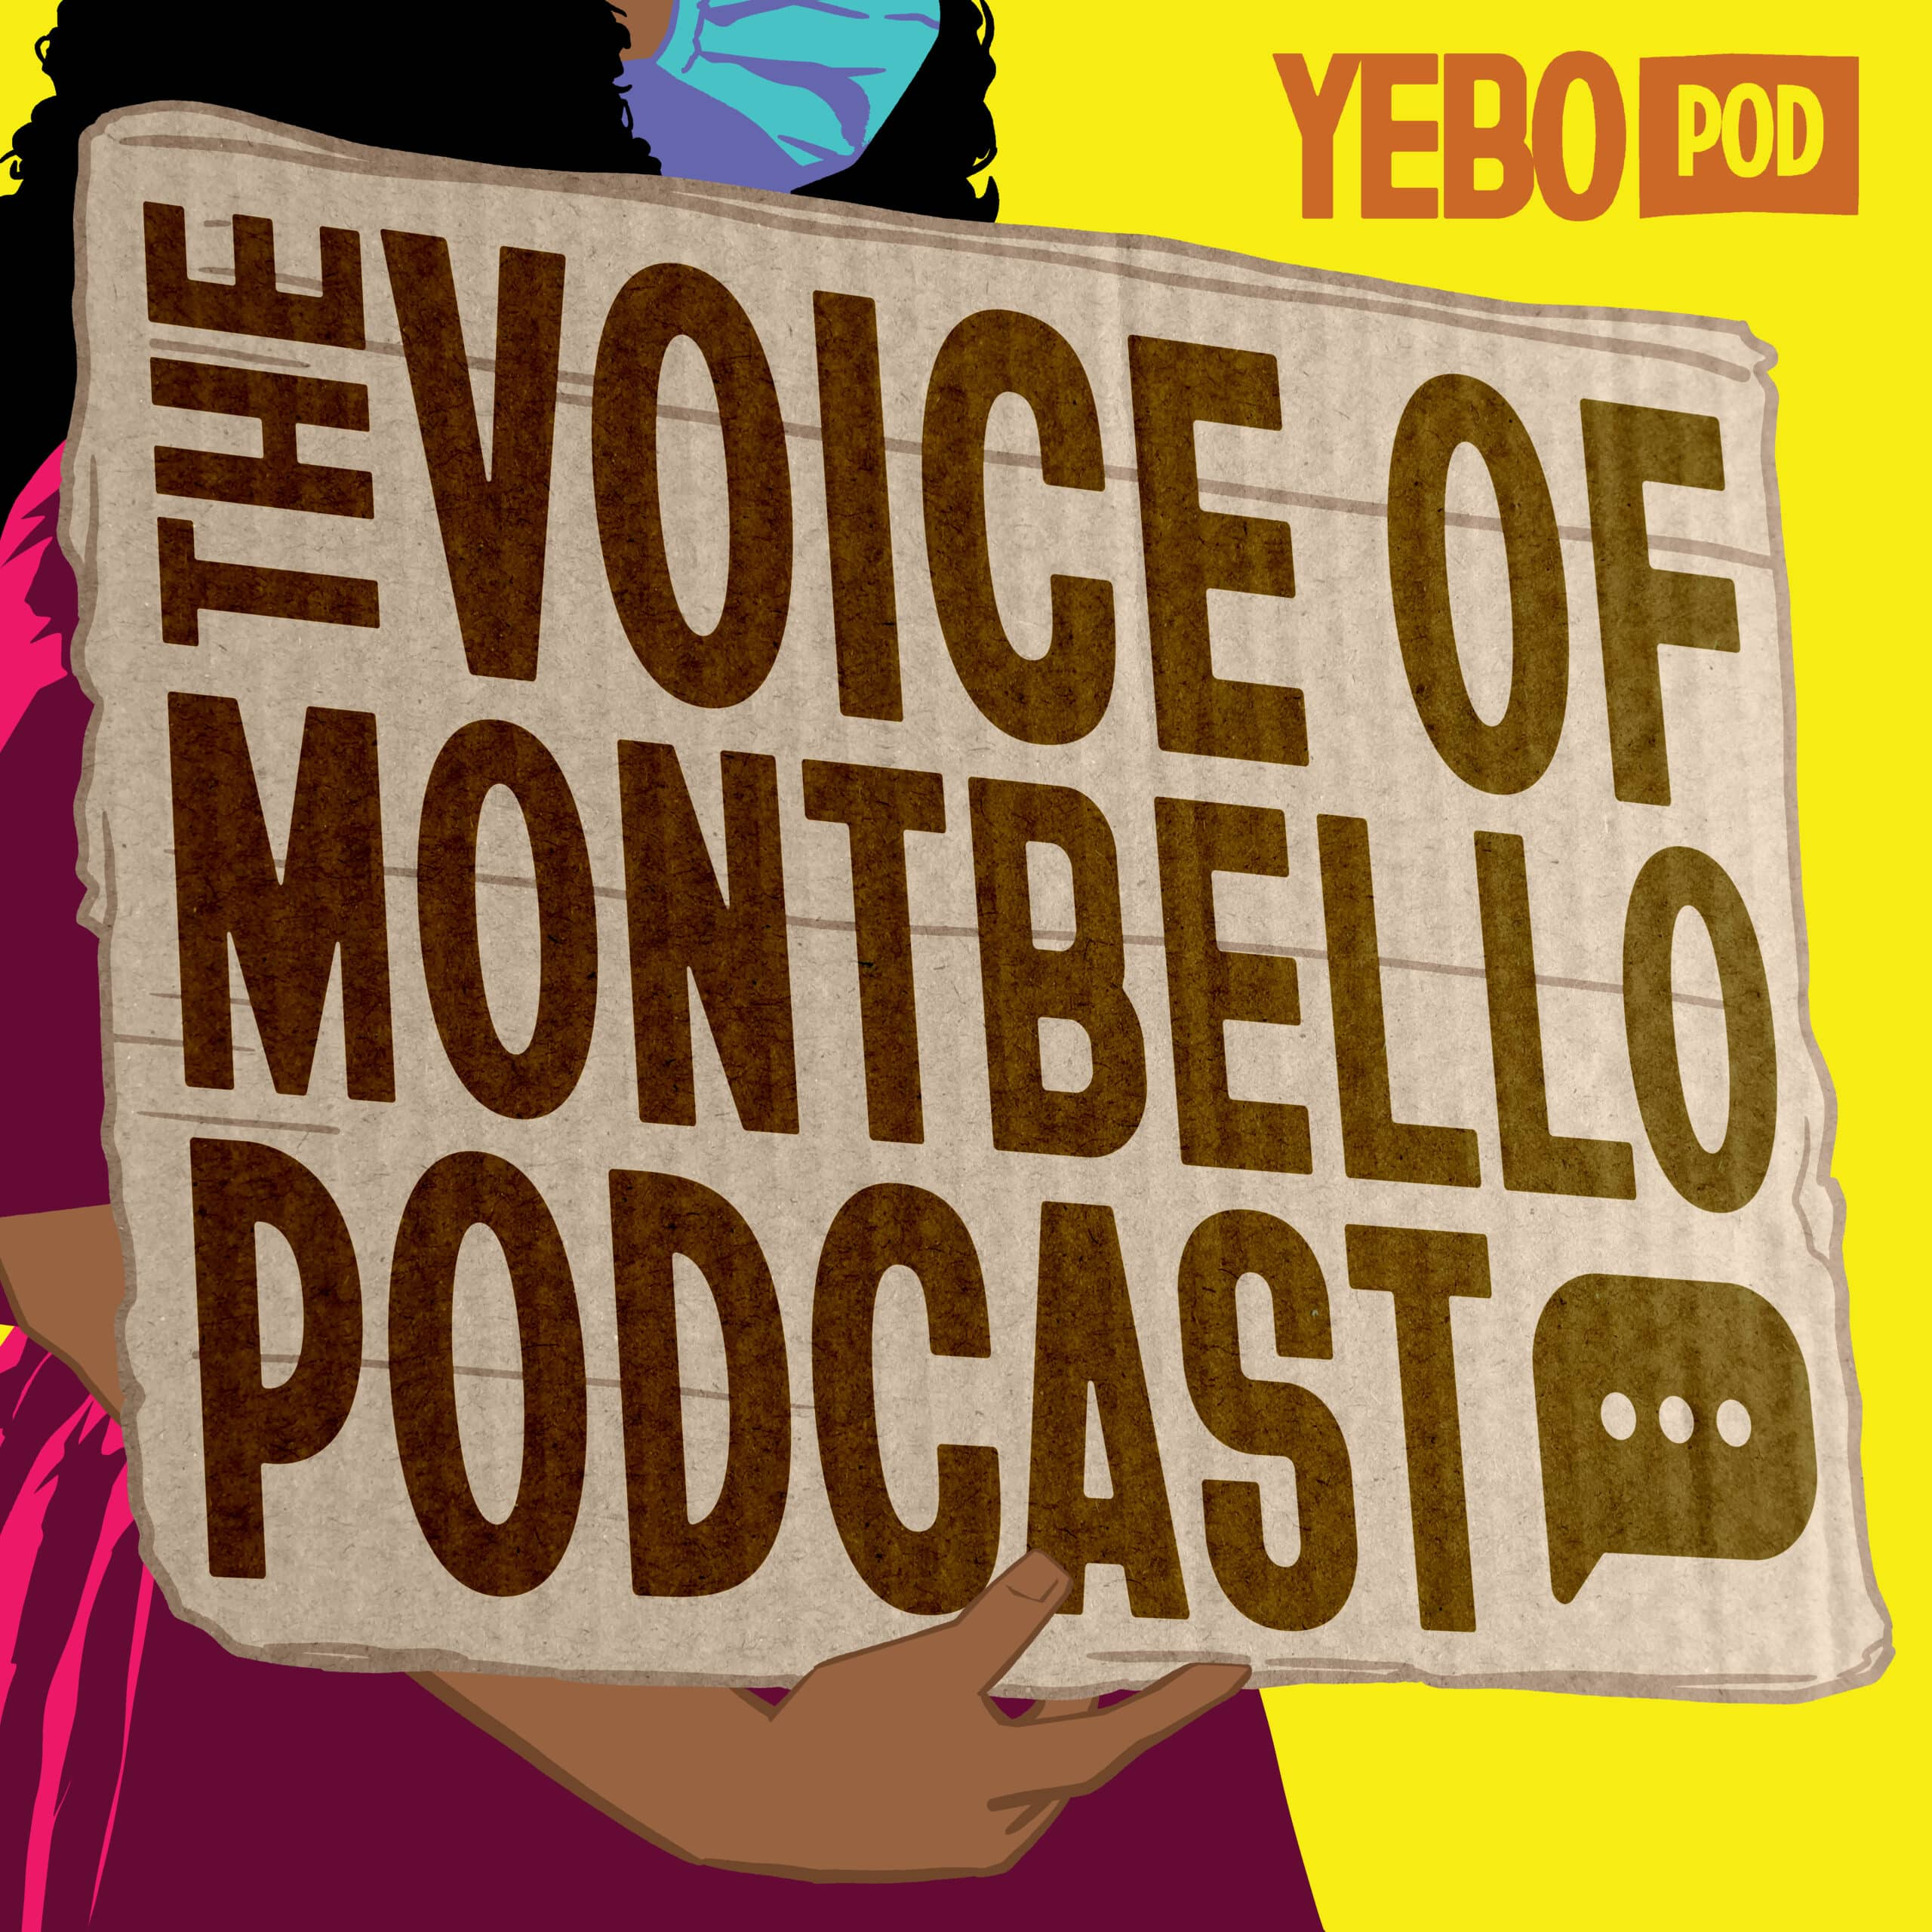 The Voice of Montbello Podcast Cover